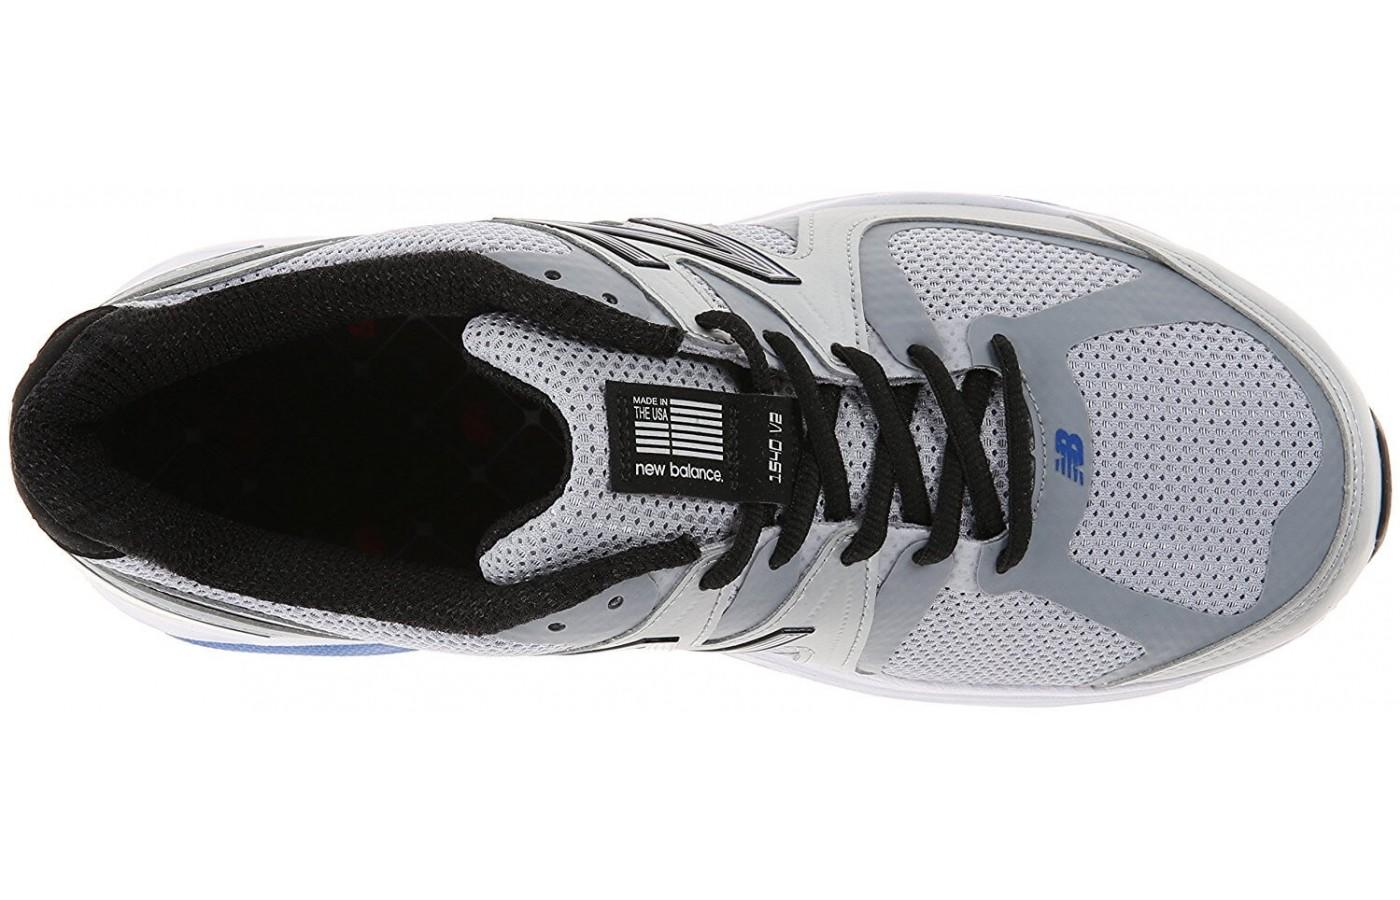 ... the New Balance 1540 v2\u0027s upper provides breathability and support ...